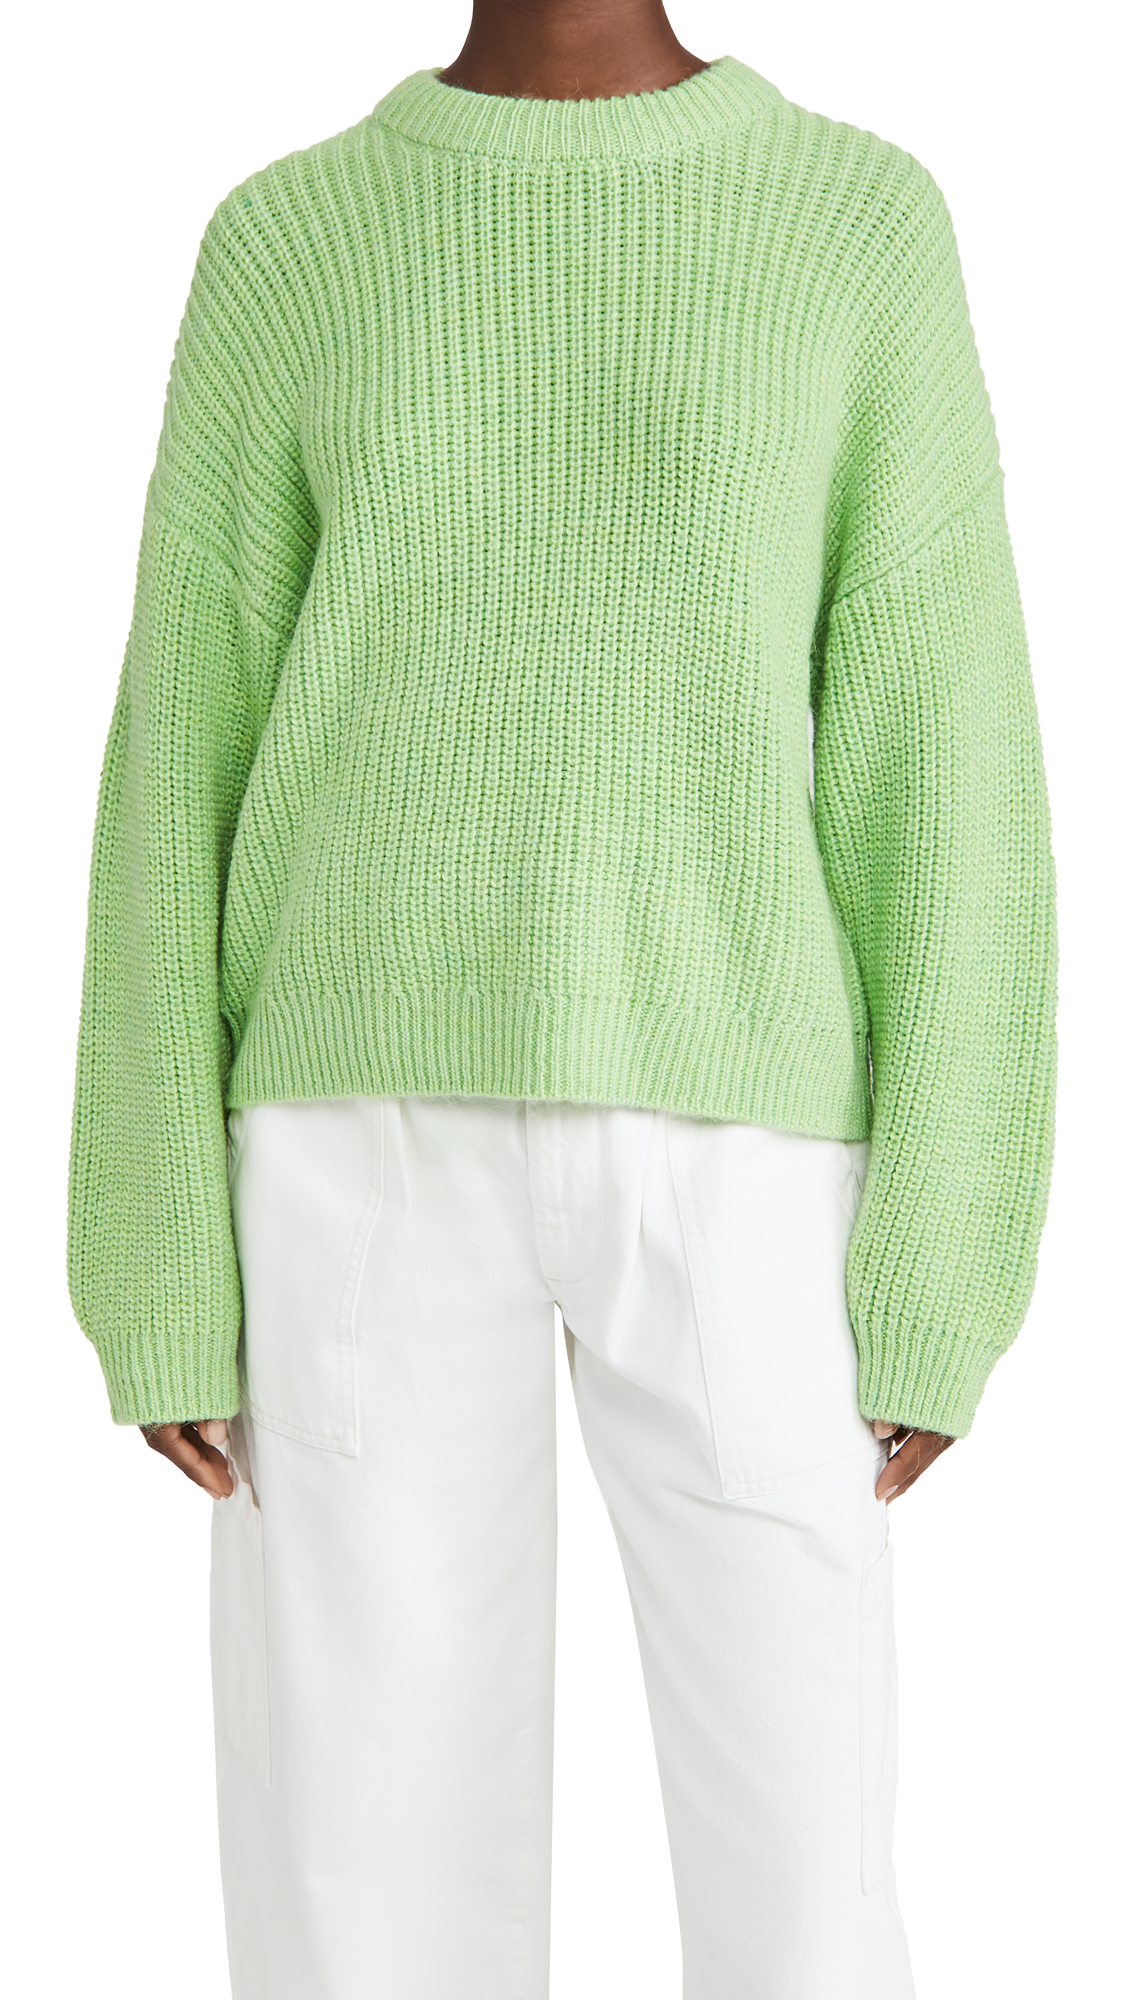 Scotch & Soda/Maison Scotch Soft Crew Neck Rib Knit Sweater